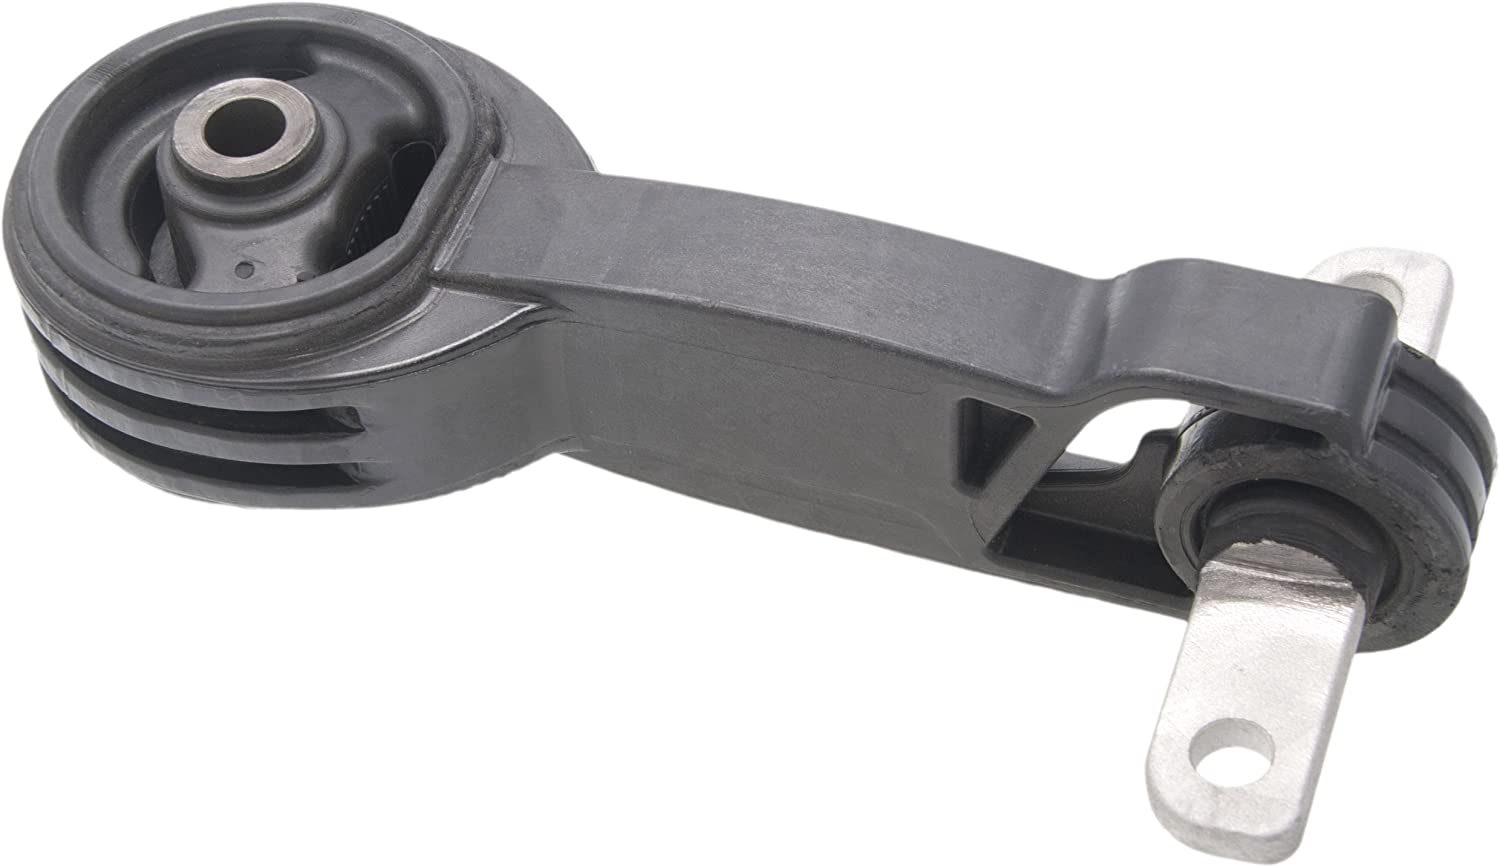 5% OFF 1 year warranty 50880Snaa81 - Front Engine Mount Honda For Febest At